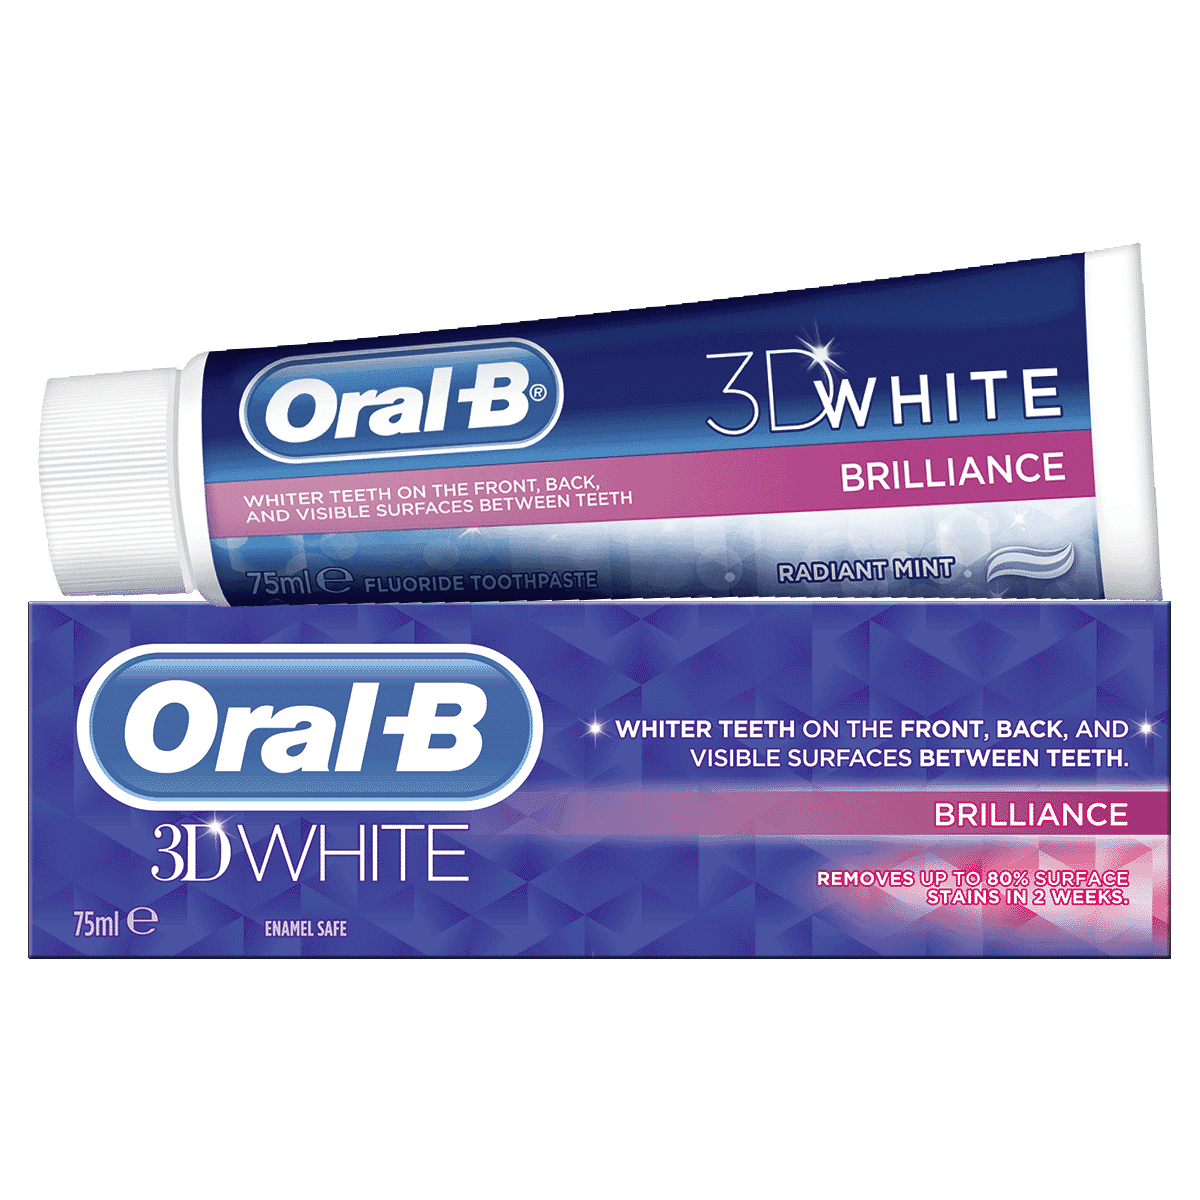 Oral-B 3D White Brilliance Toothpaste